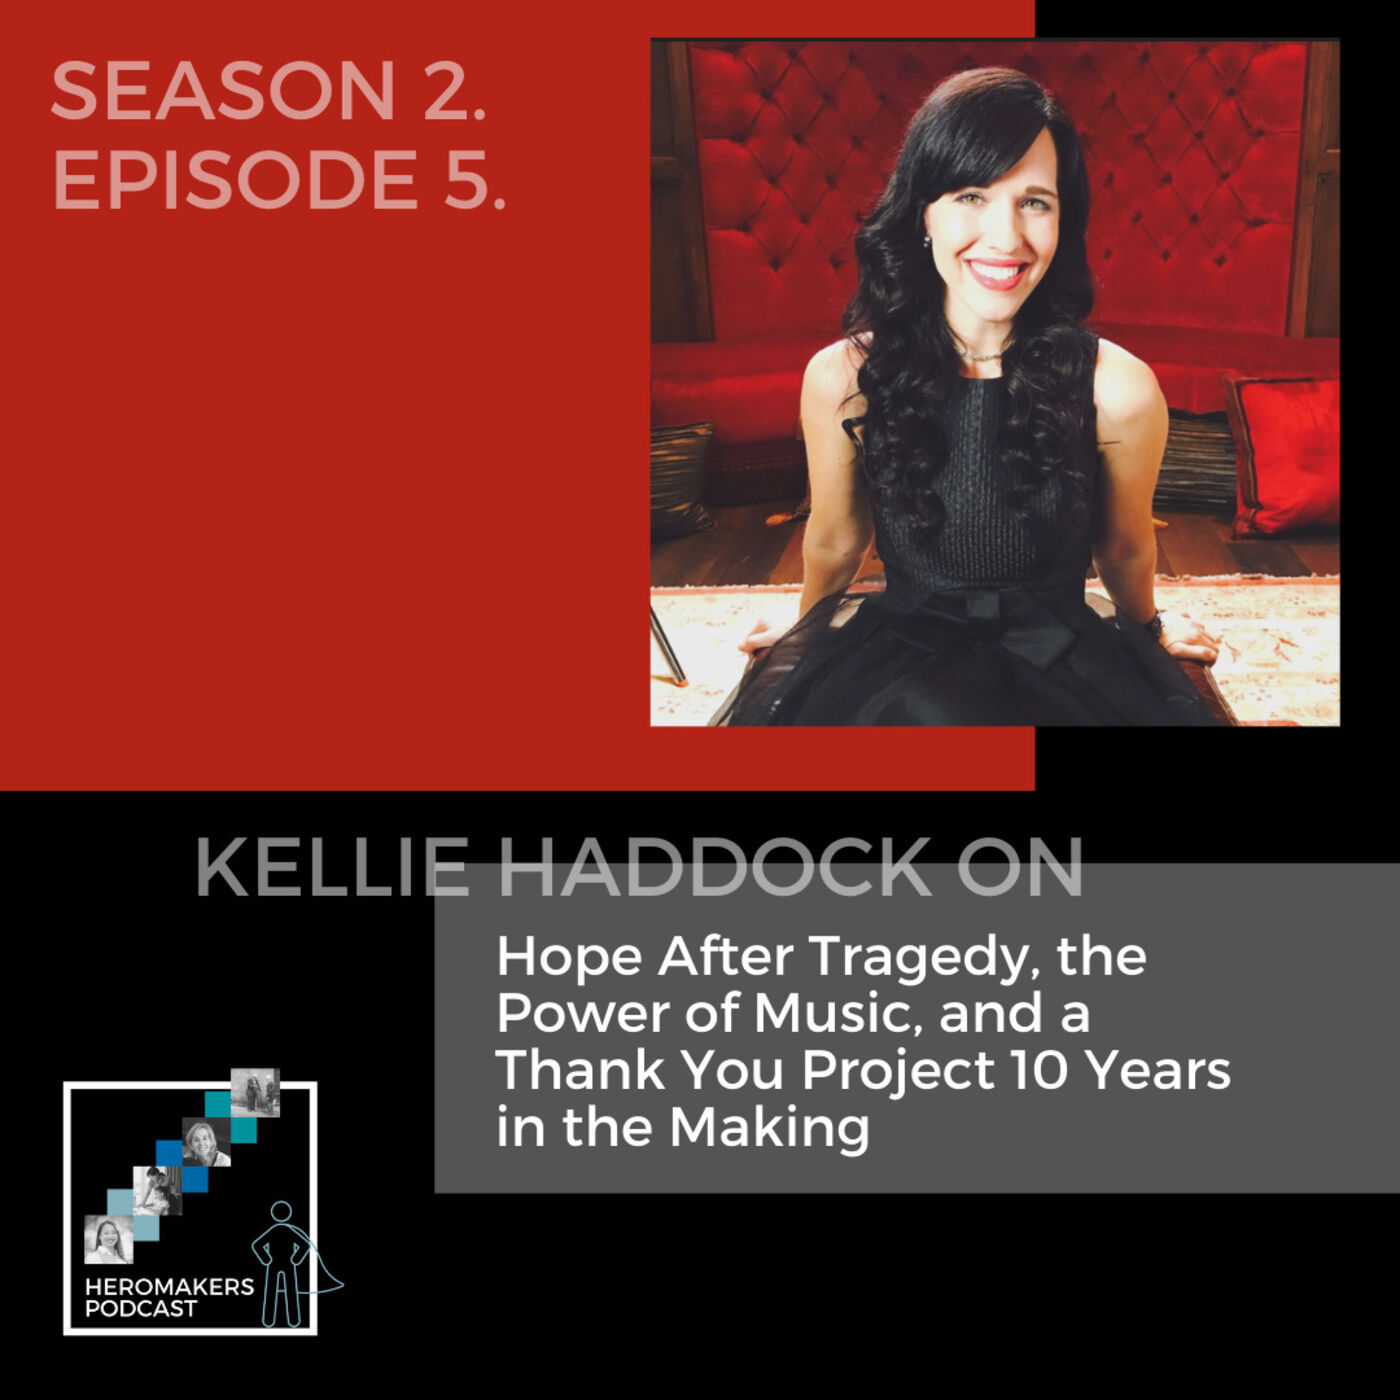 Kellie Haddock on Hope After Tragedy, the Power of Music, and a Thank You Project 10 Years in the Making